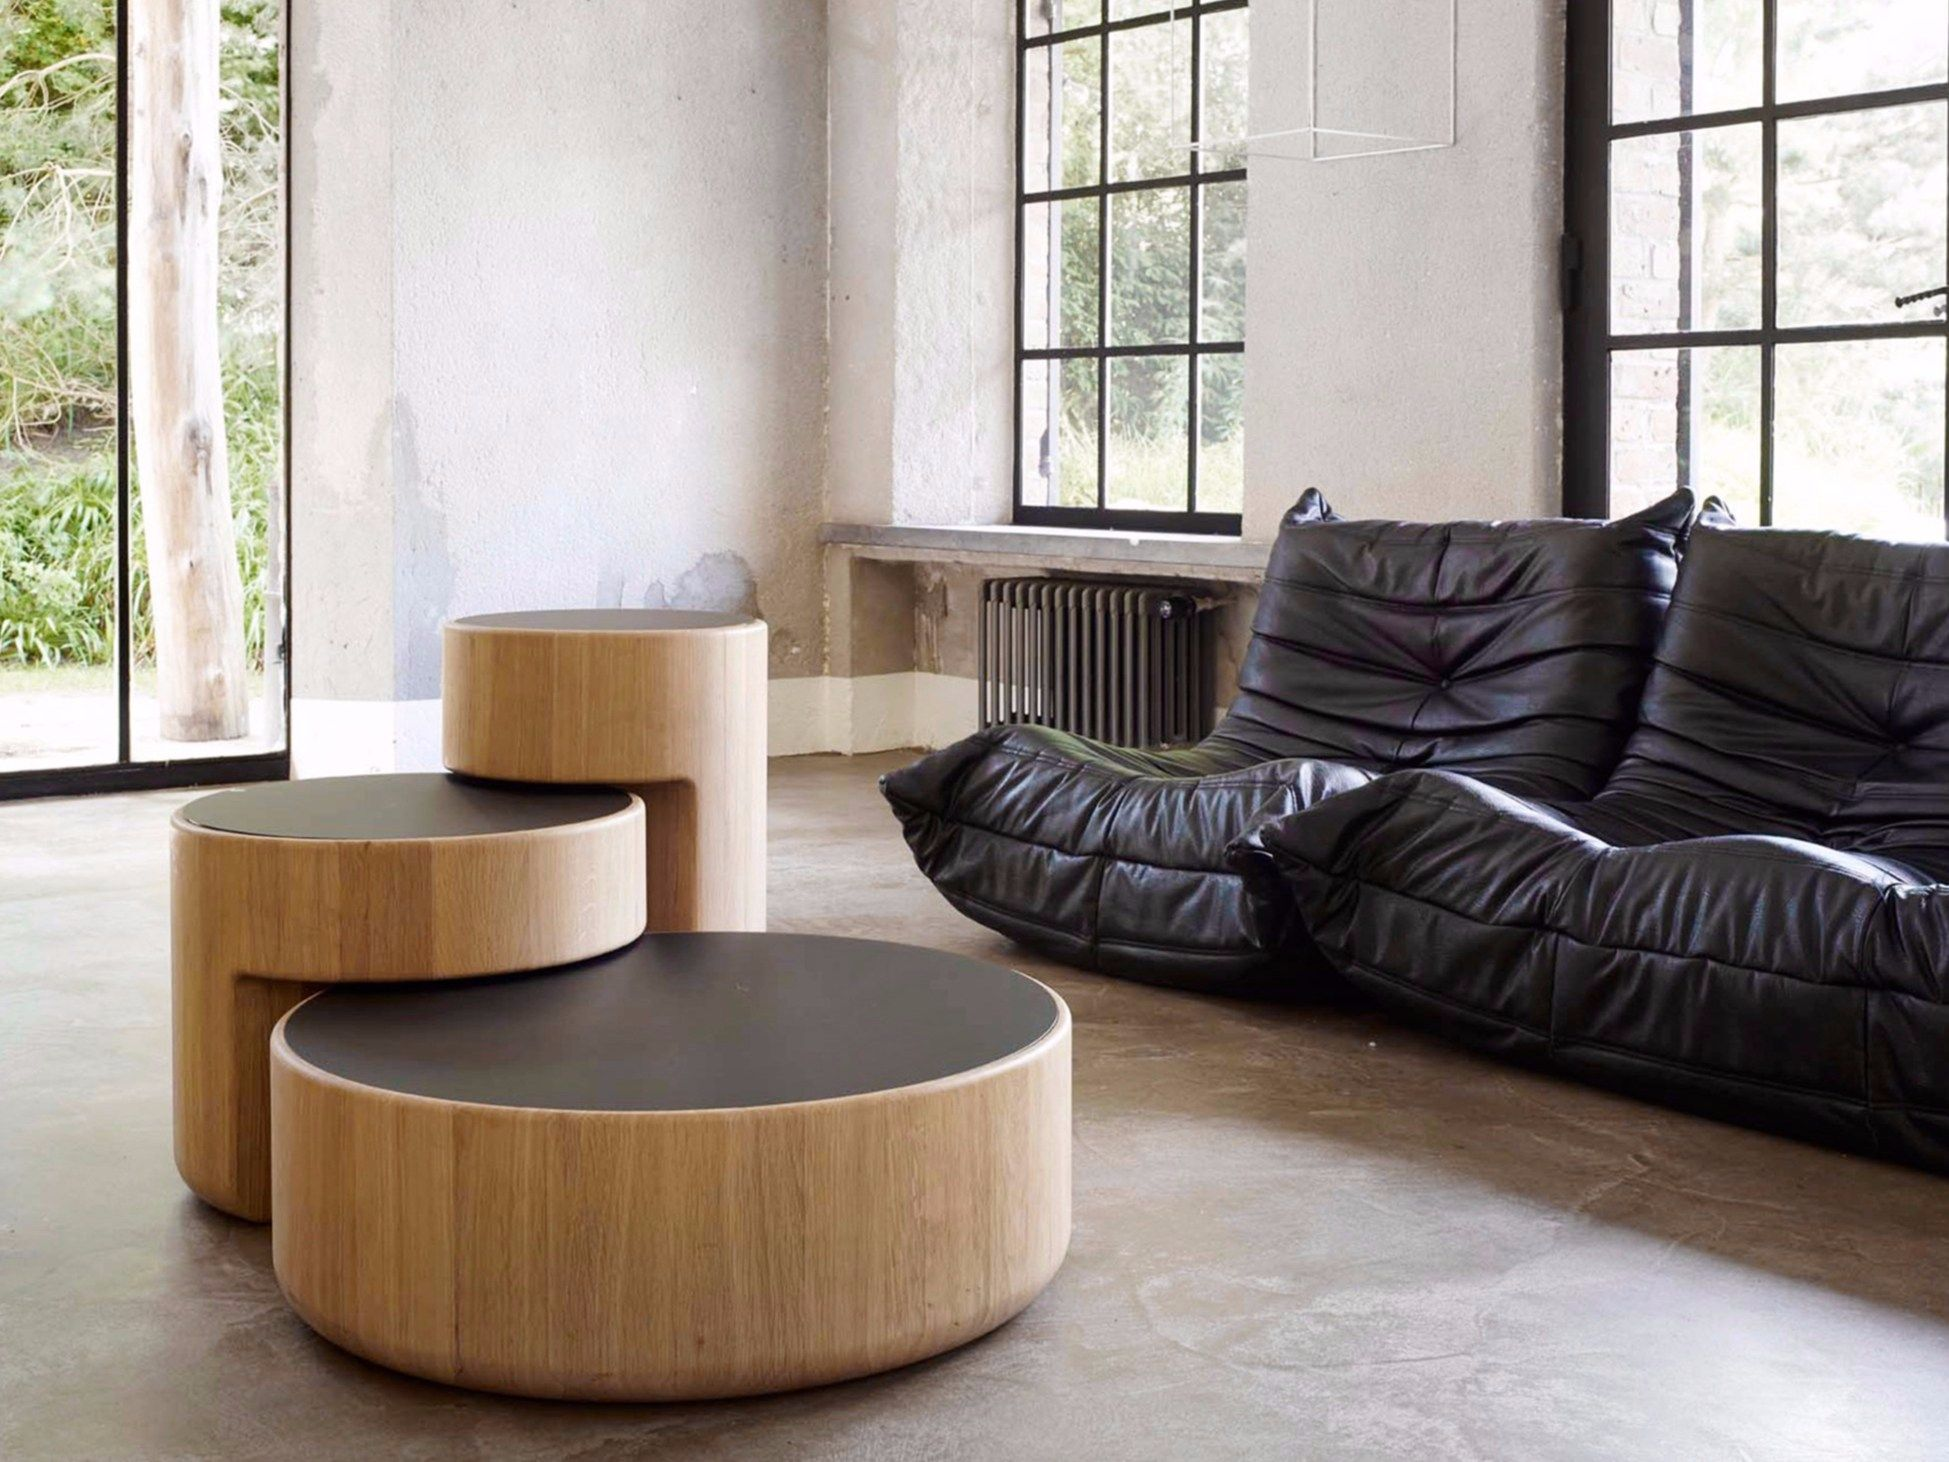 Levels Coffee Table By Per Use Design Lucie Koldova Dan Yeffet Coffee Table Living Room Coffee Table Coffee Table Design [ 1462 x 1949 Pixel ]